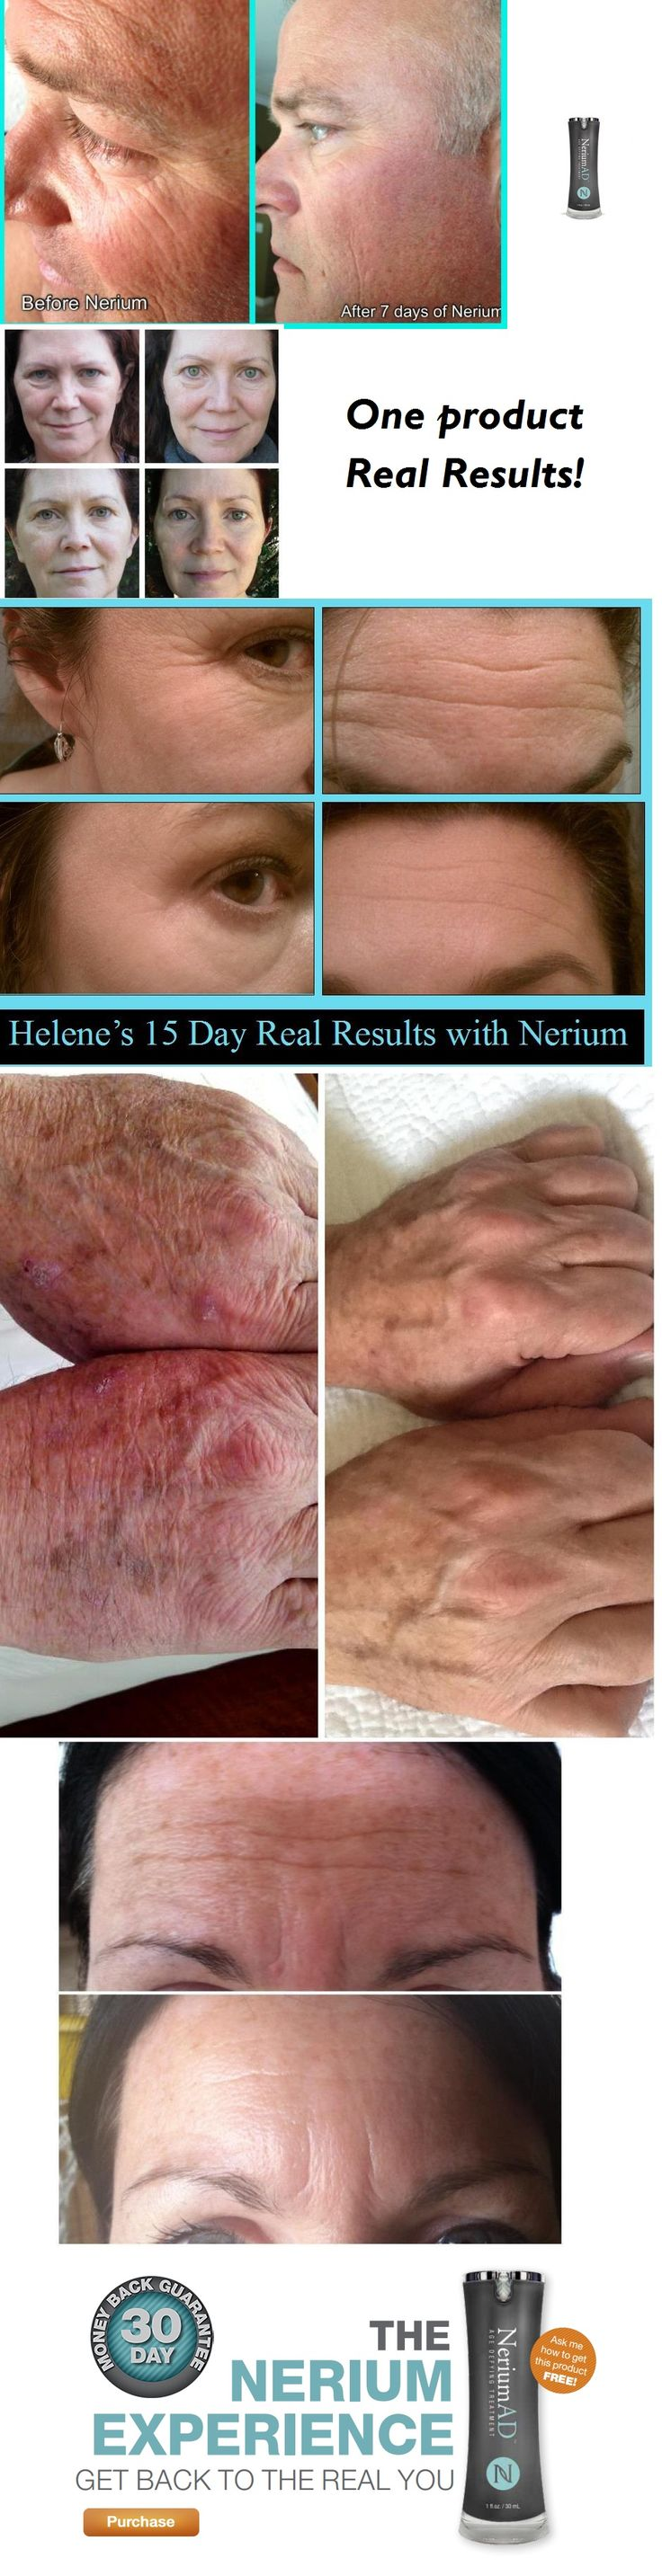 Nerium AD, one product...REAL Results! $80.  www.danaleejeu.nerium.com   www.facebook.com/danaleejeu.nerium to learn how to order!